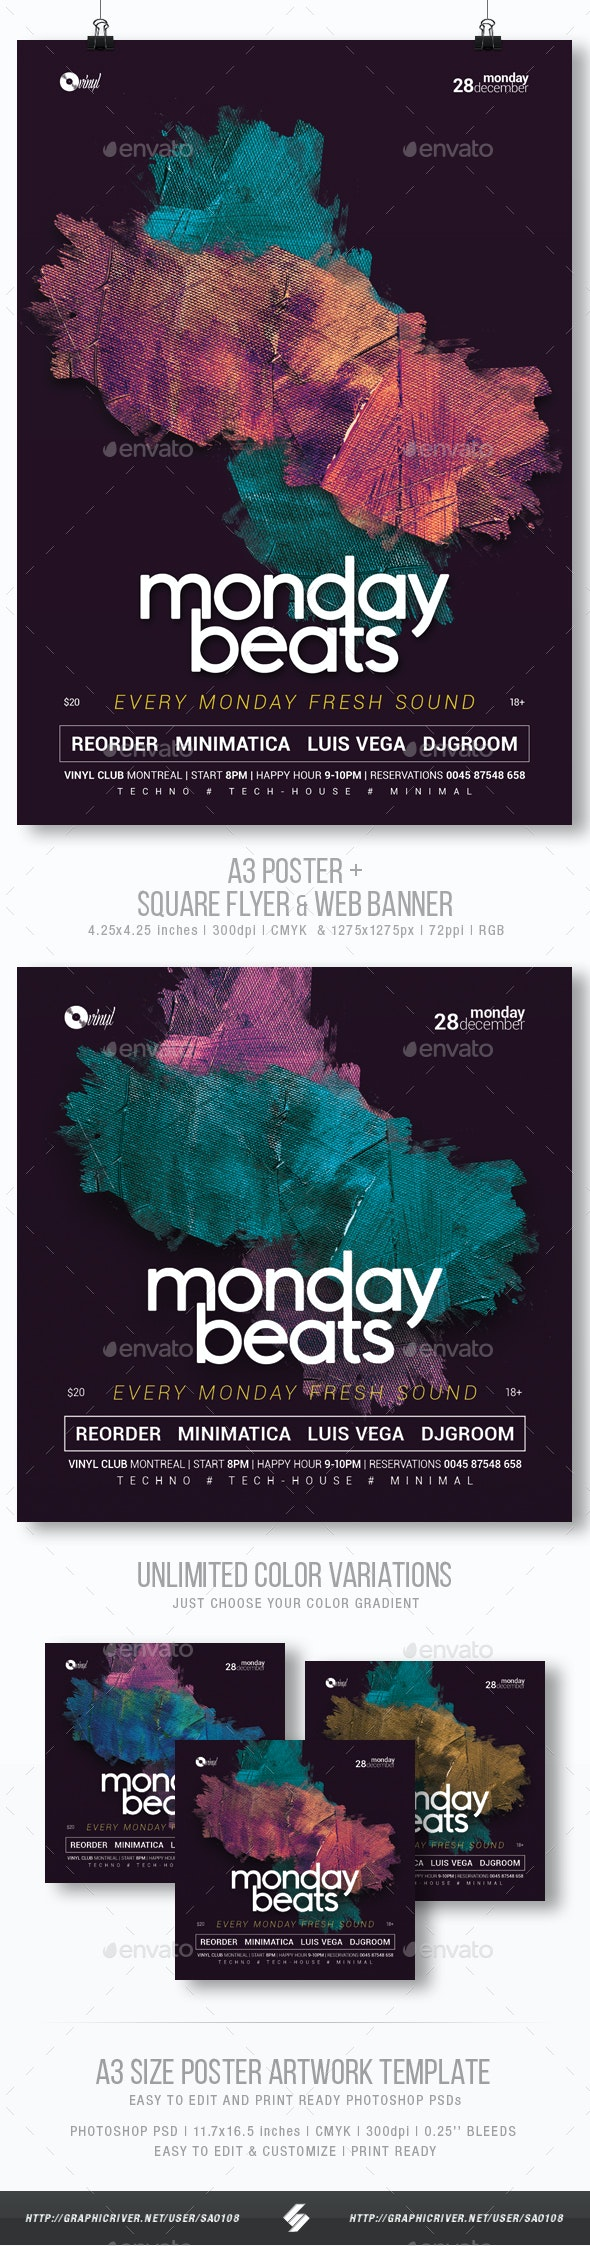 Monday Beats - Club Music Party Flyer / Poster Template A3 - Clubs & Parties Events